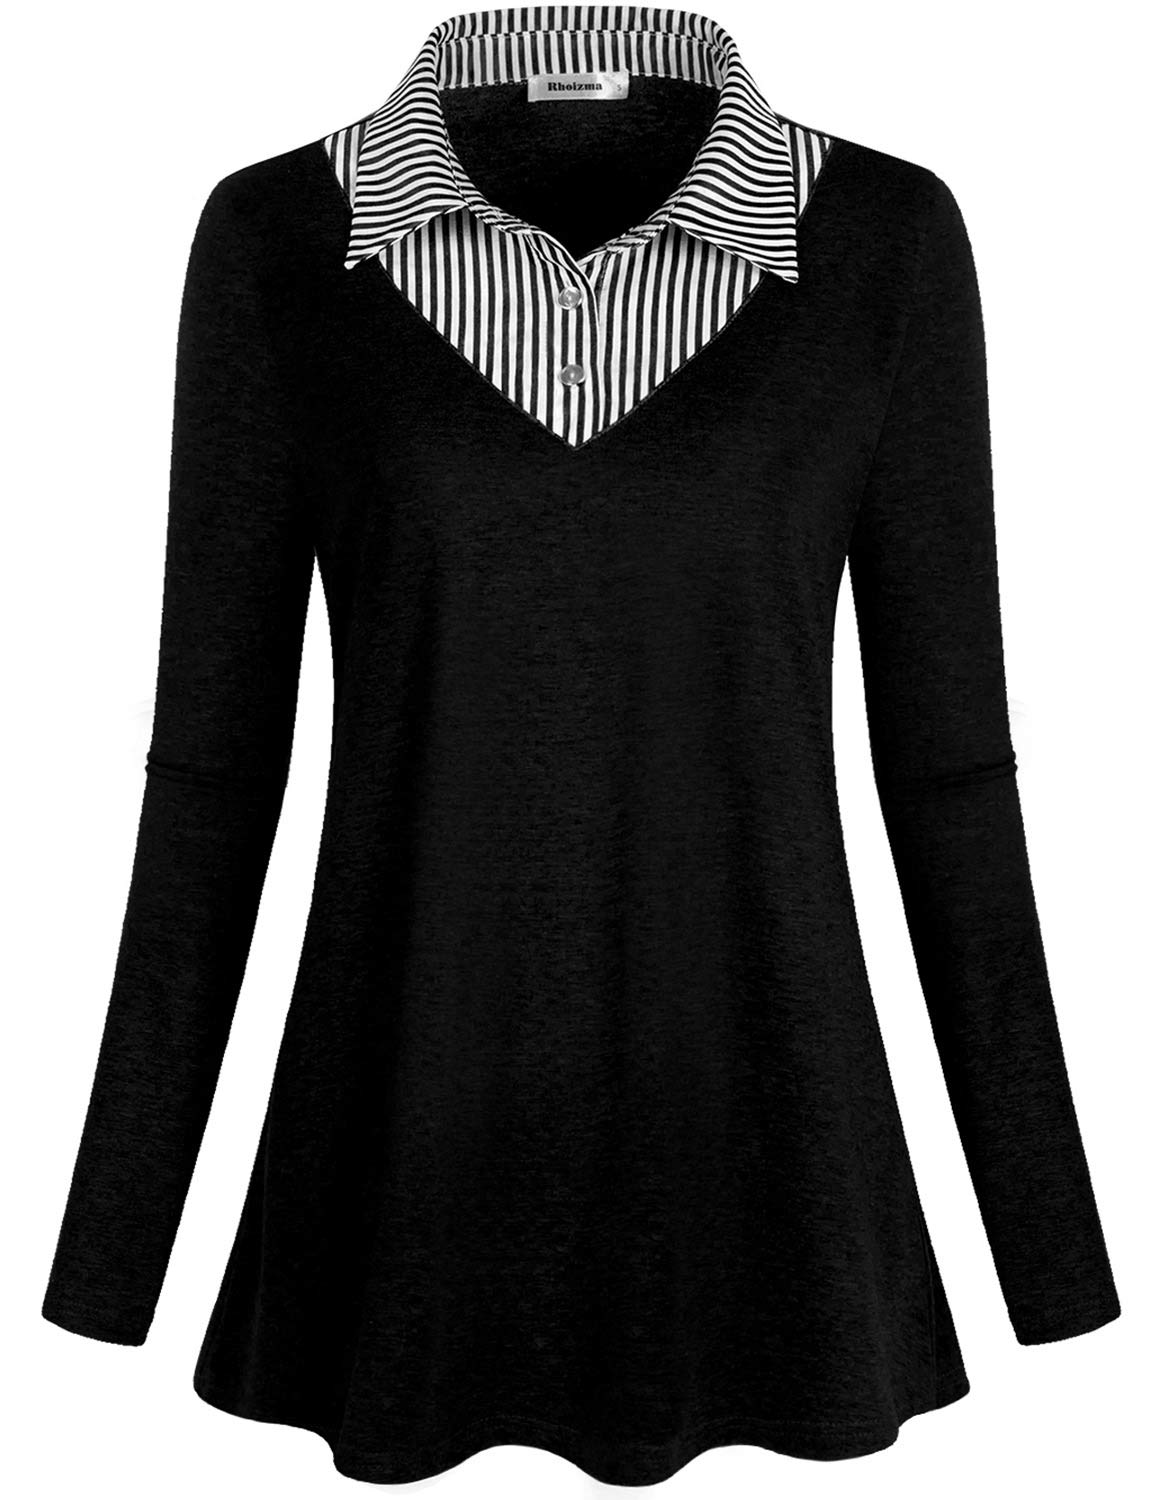 Rhoizma Business Casual Clothes For Women Juniors Work Blouses